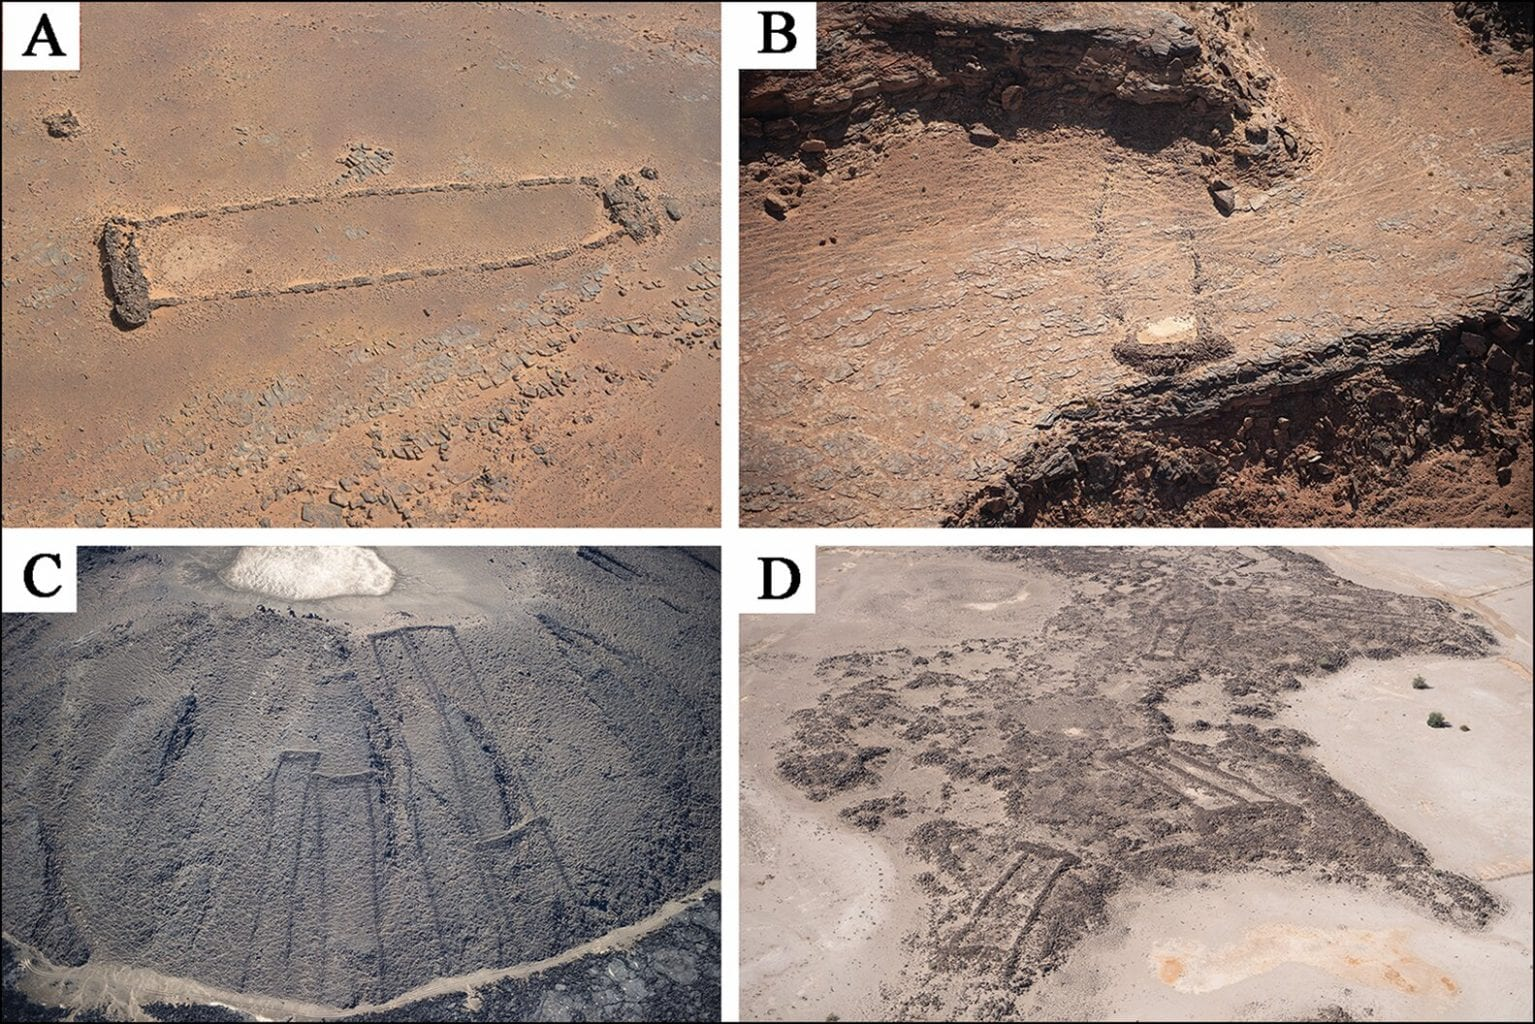 The Arabian cult did not build mustatils according to specific geographical positionings. All are different and are solely oriented according to local topography. Credit: AAKSAU and Royal Commission for AlUla